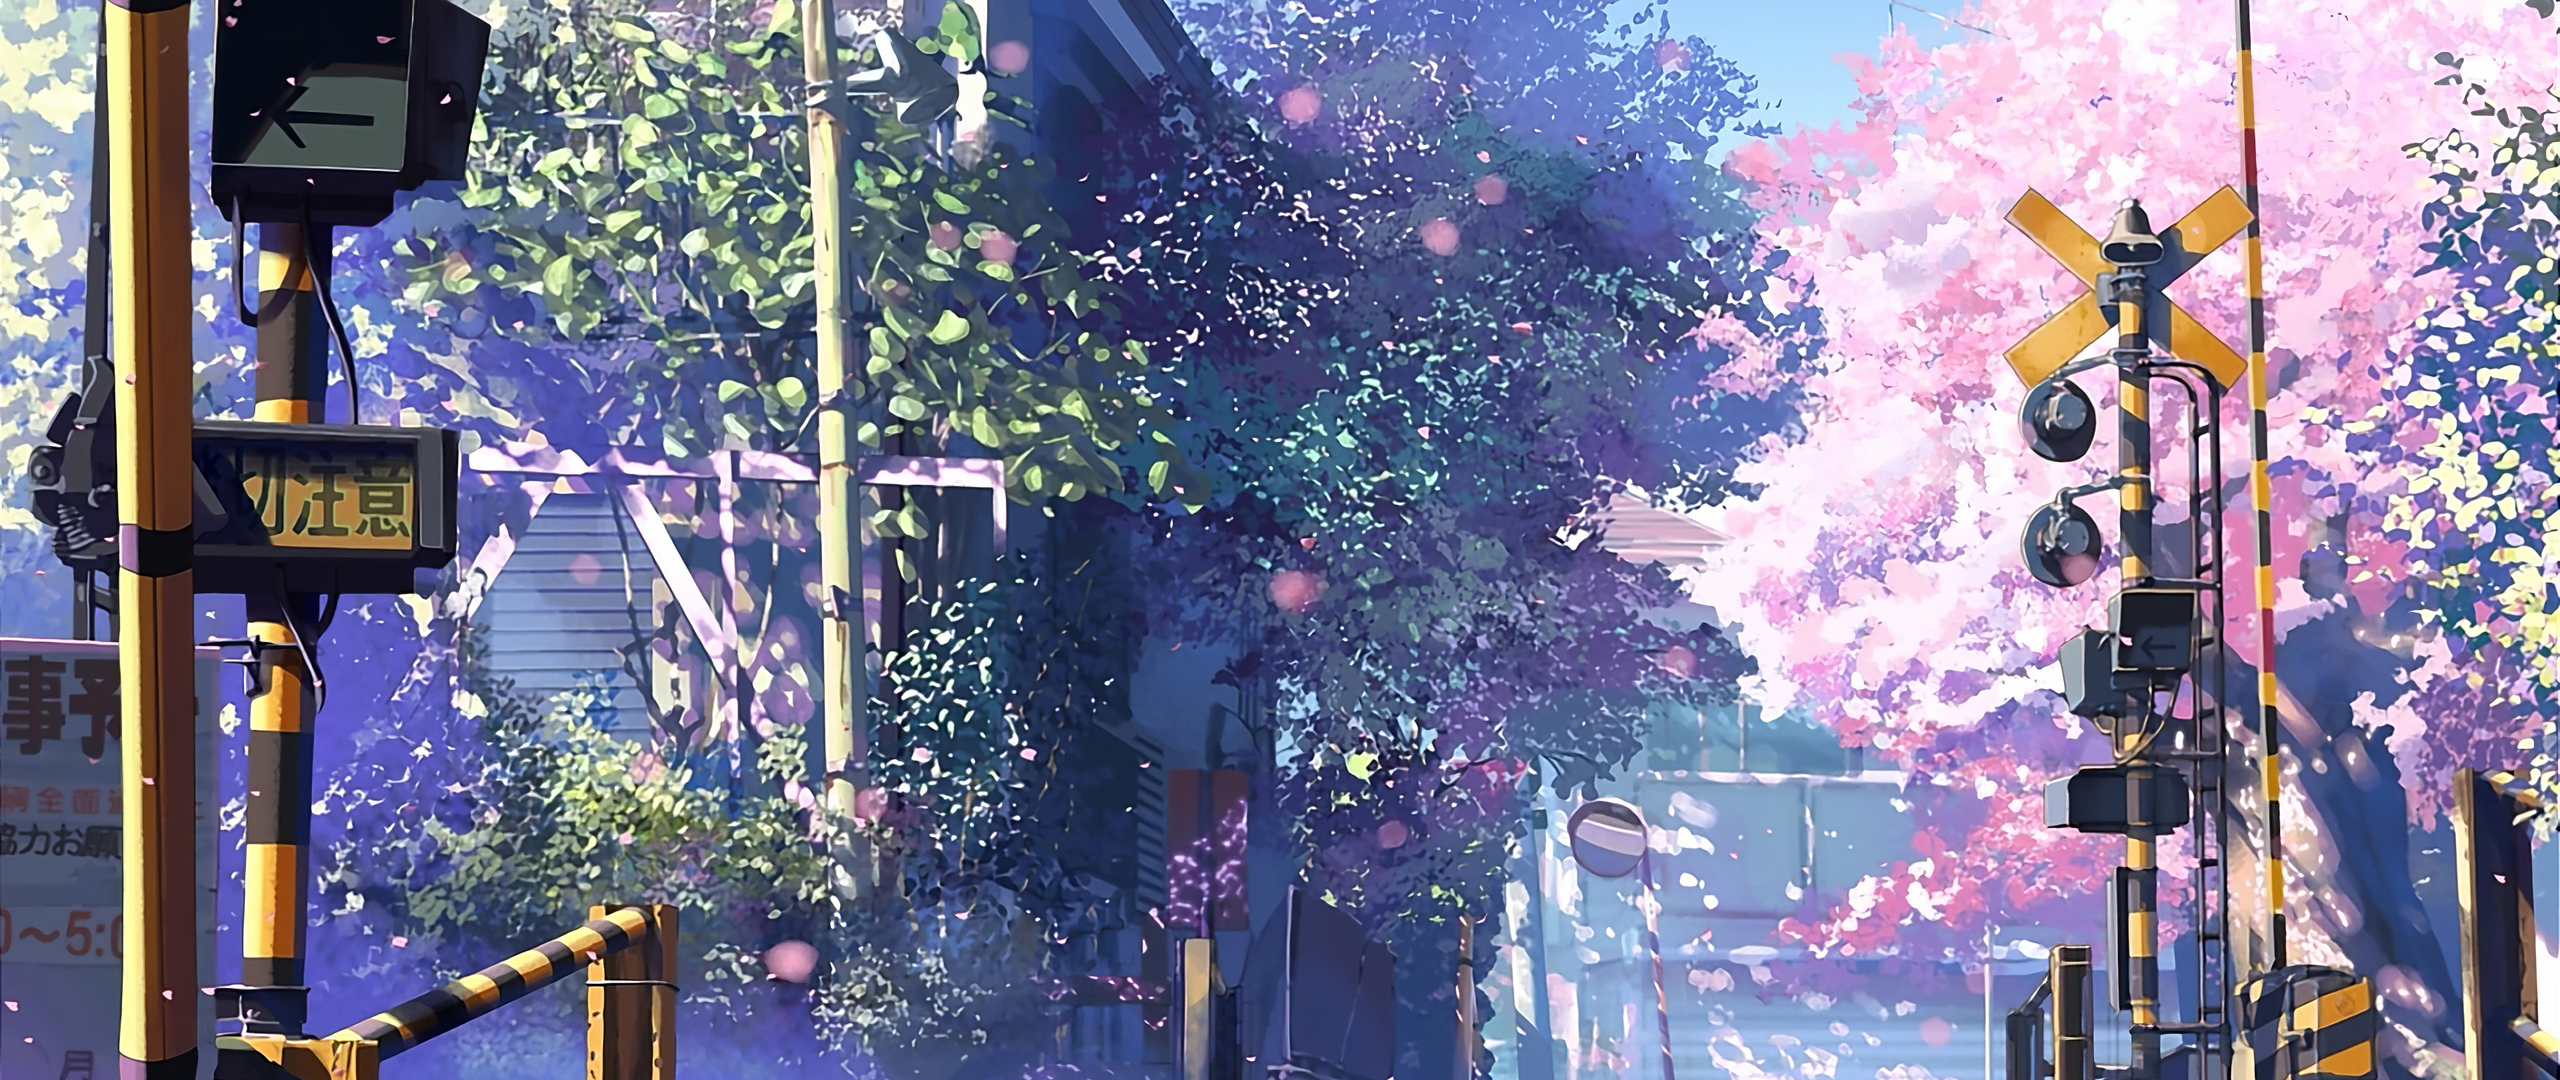 2560x1080 5 Centimeters Per Second Anime Tv Series 4k 2560x1080 Resolution Hd 4k Wallpapers Images Backgrounds Photos And Pictures